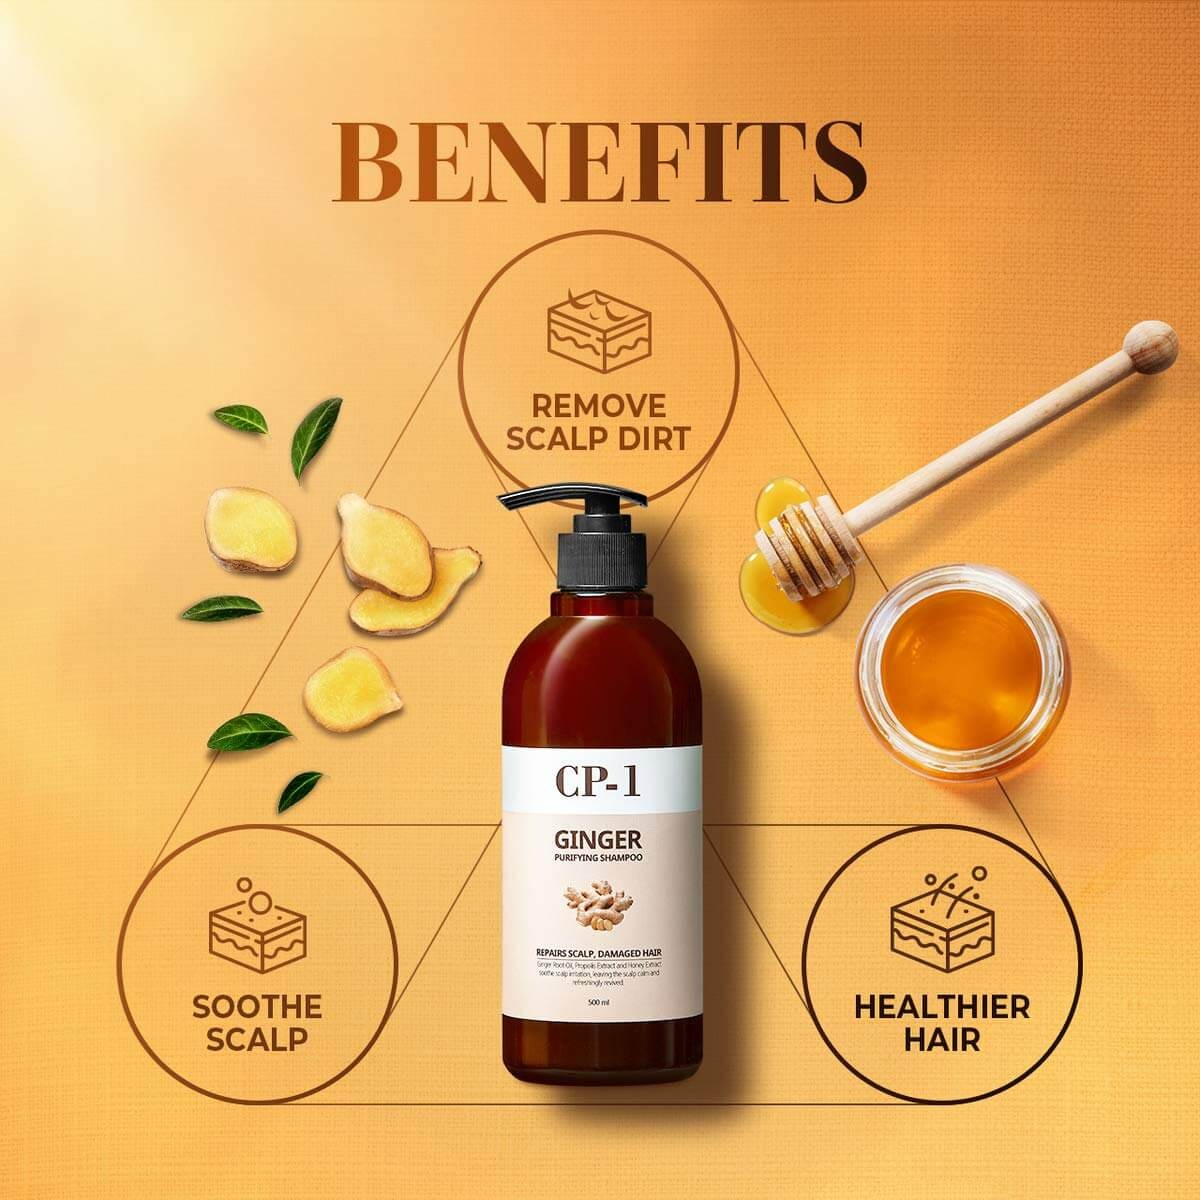 CP-1 Ginger Purifying Shampoo [Esthetic House]